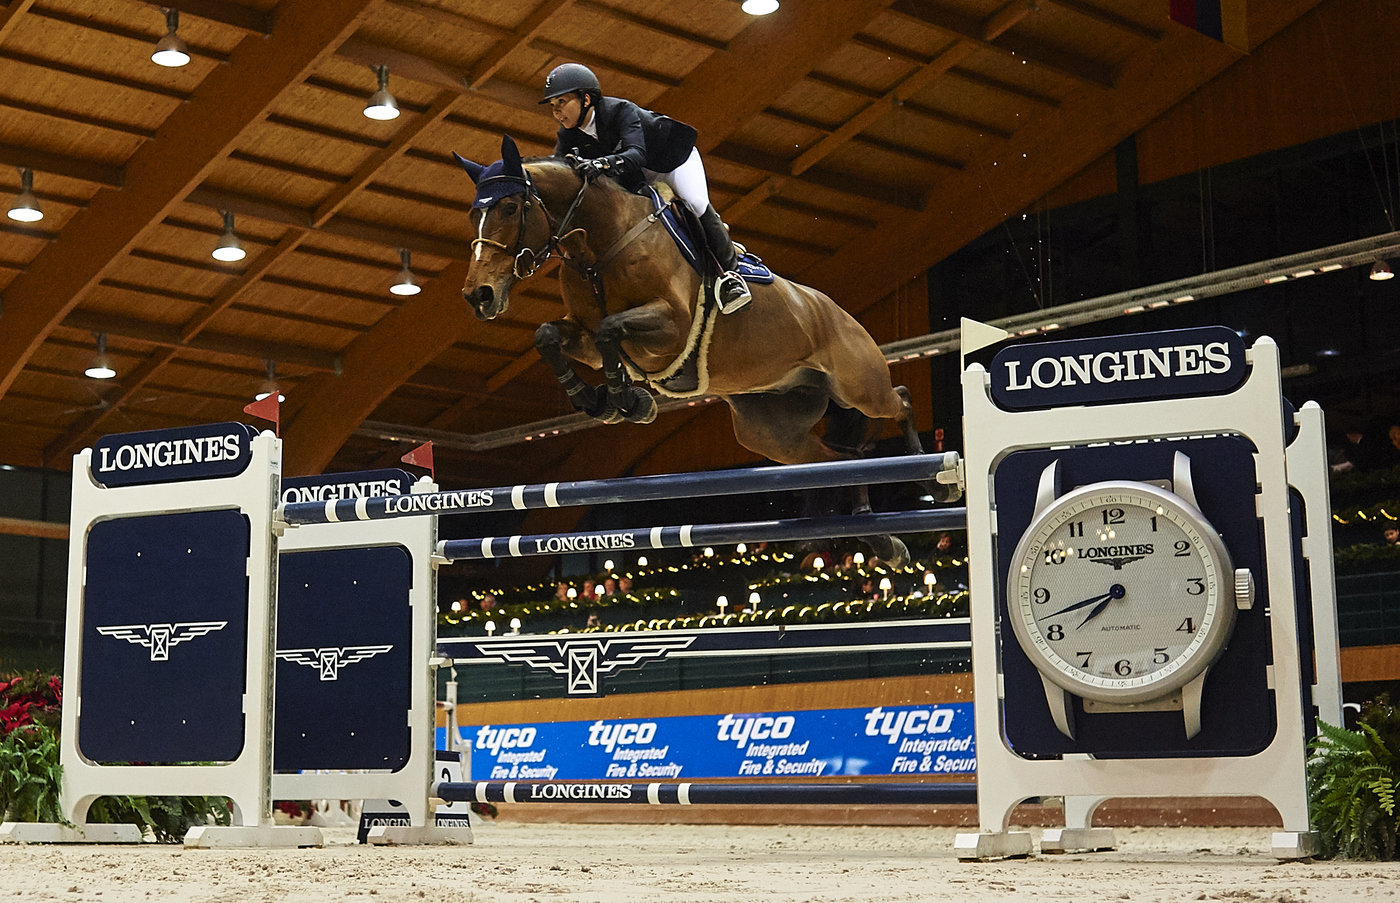 Longines Show Jumping Event: Superb victory of Leopold van Asten riding VDL Groep Zidane at the Longines Grand Prix of CSI A Coruña's winter edition 5